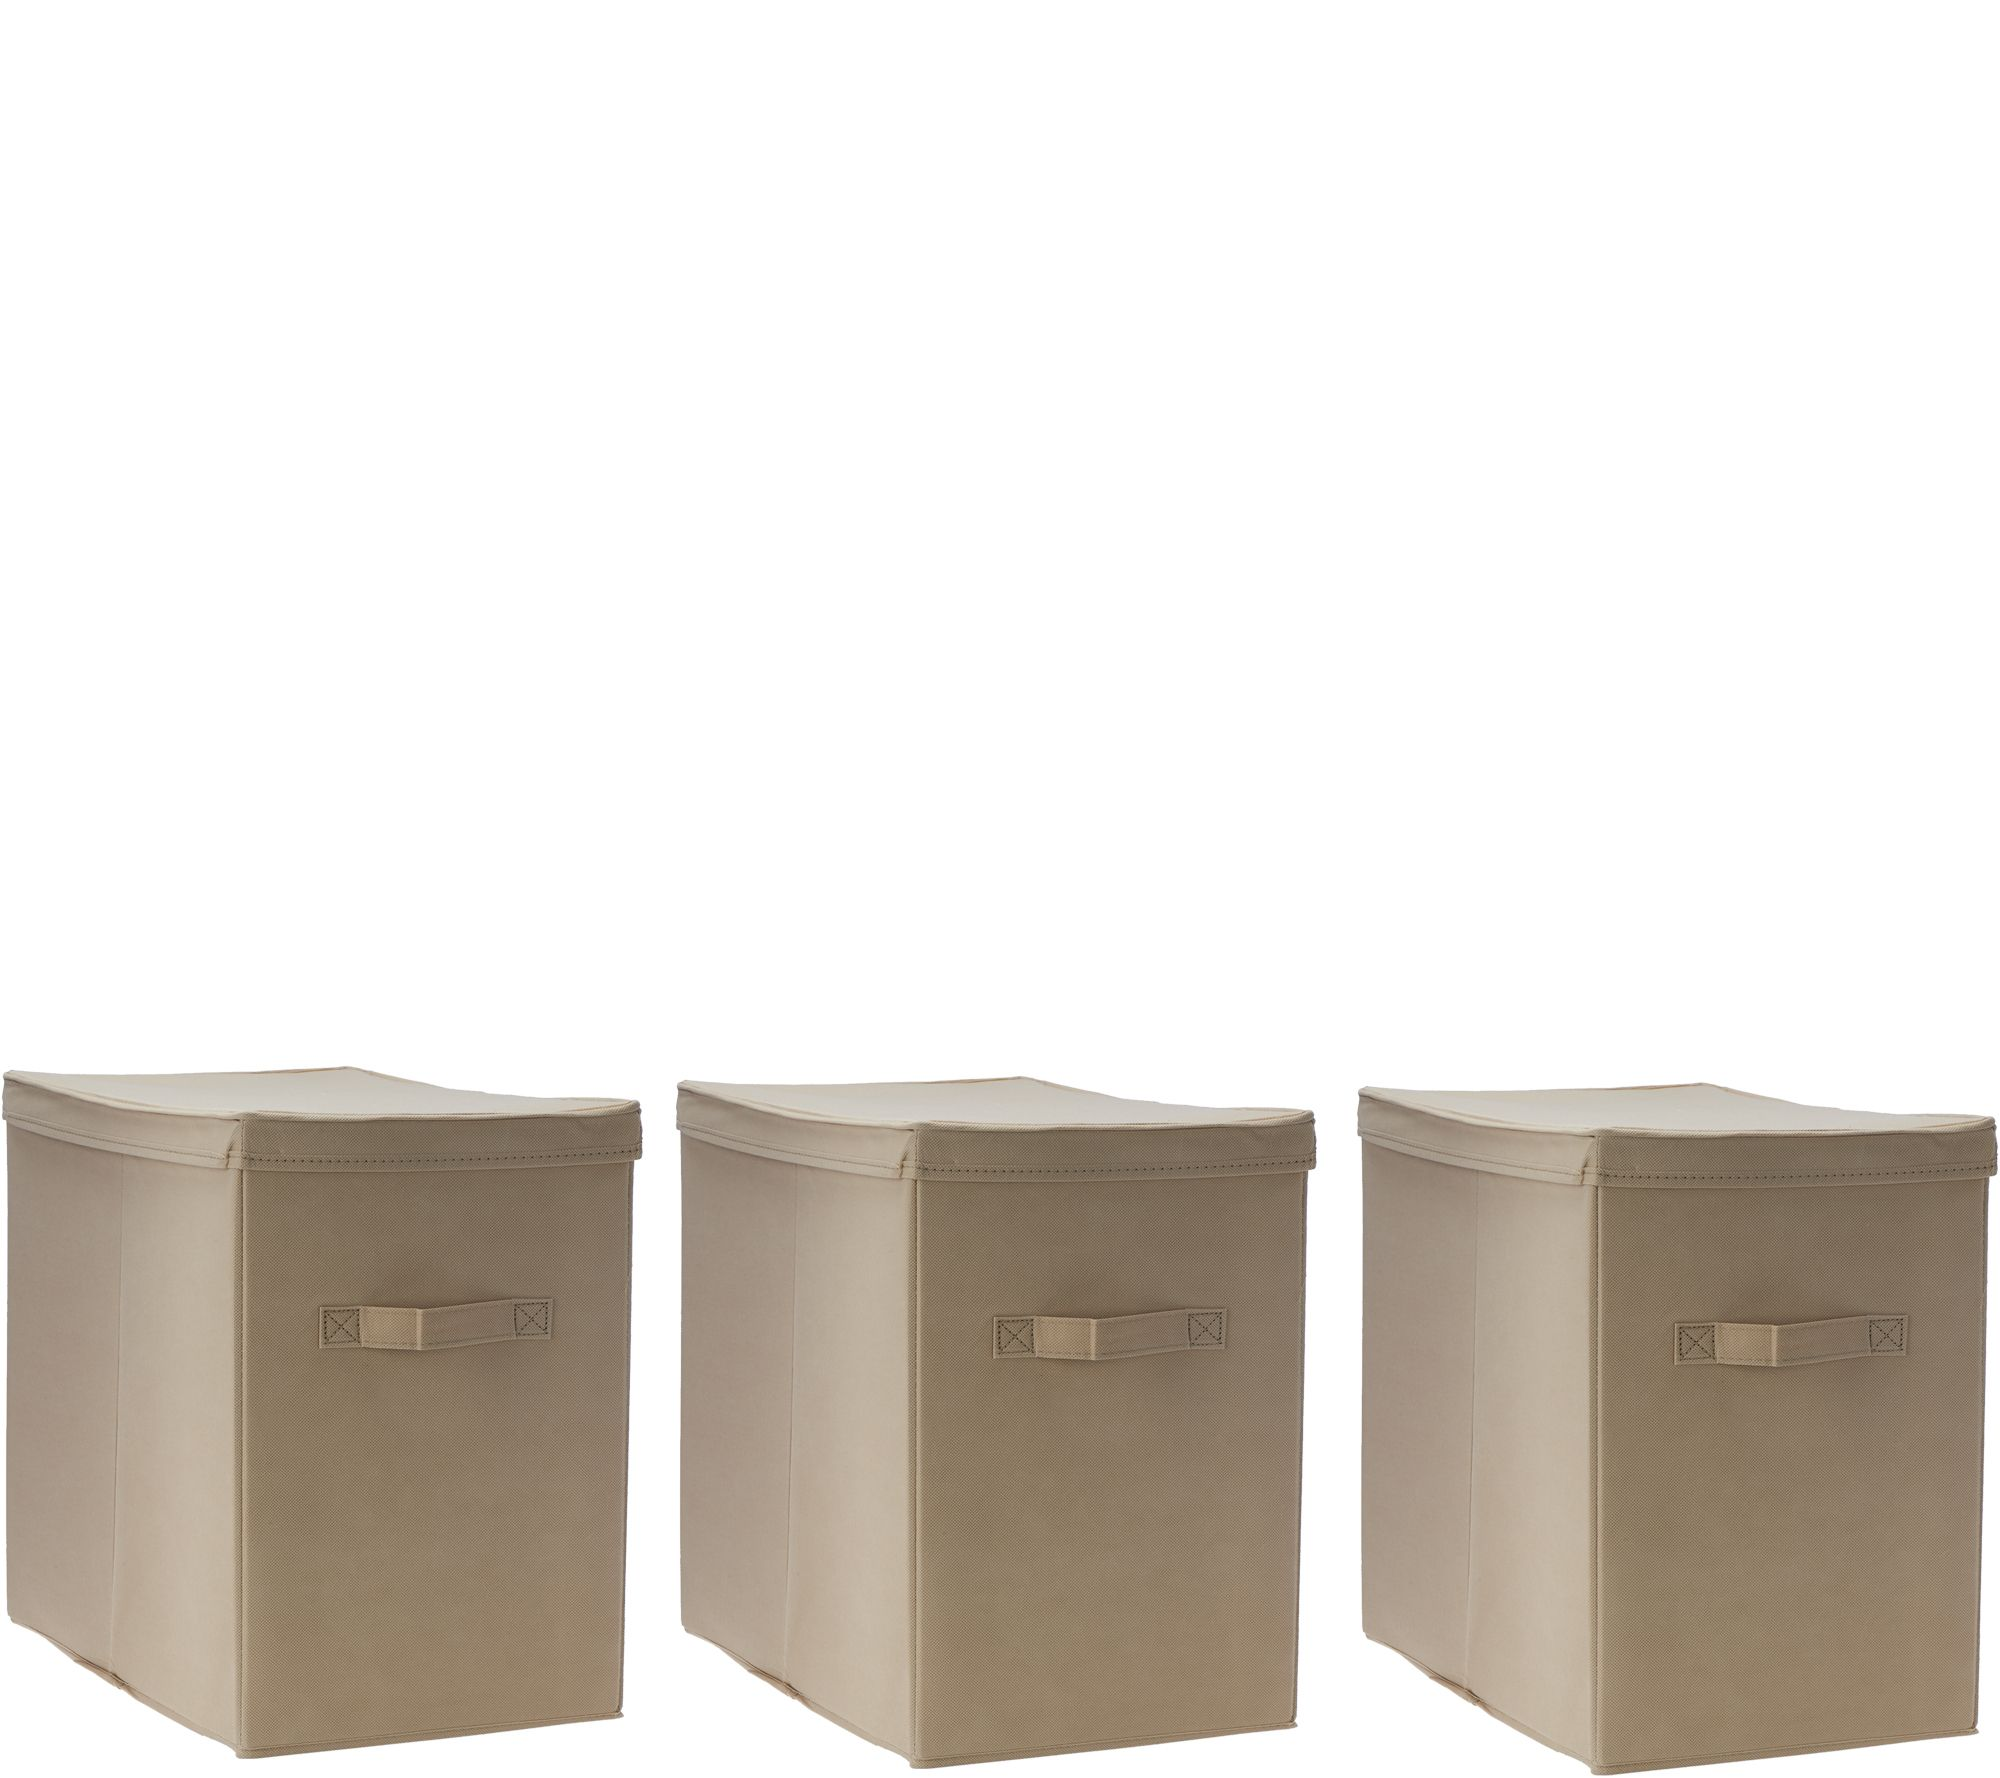 Marvelous Pop It Set Of 3 Collapsible Storage Bins With Lids   Page 1 U2014 QVC.com